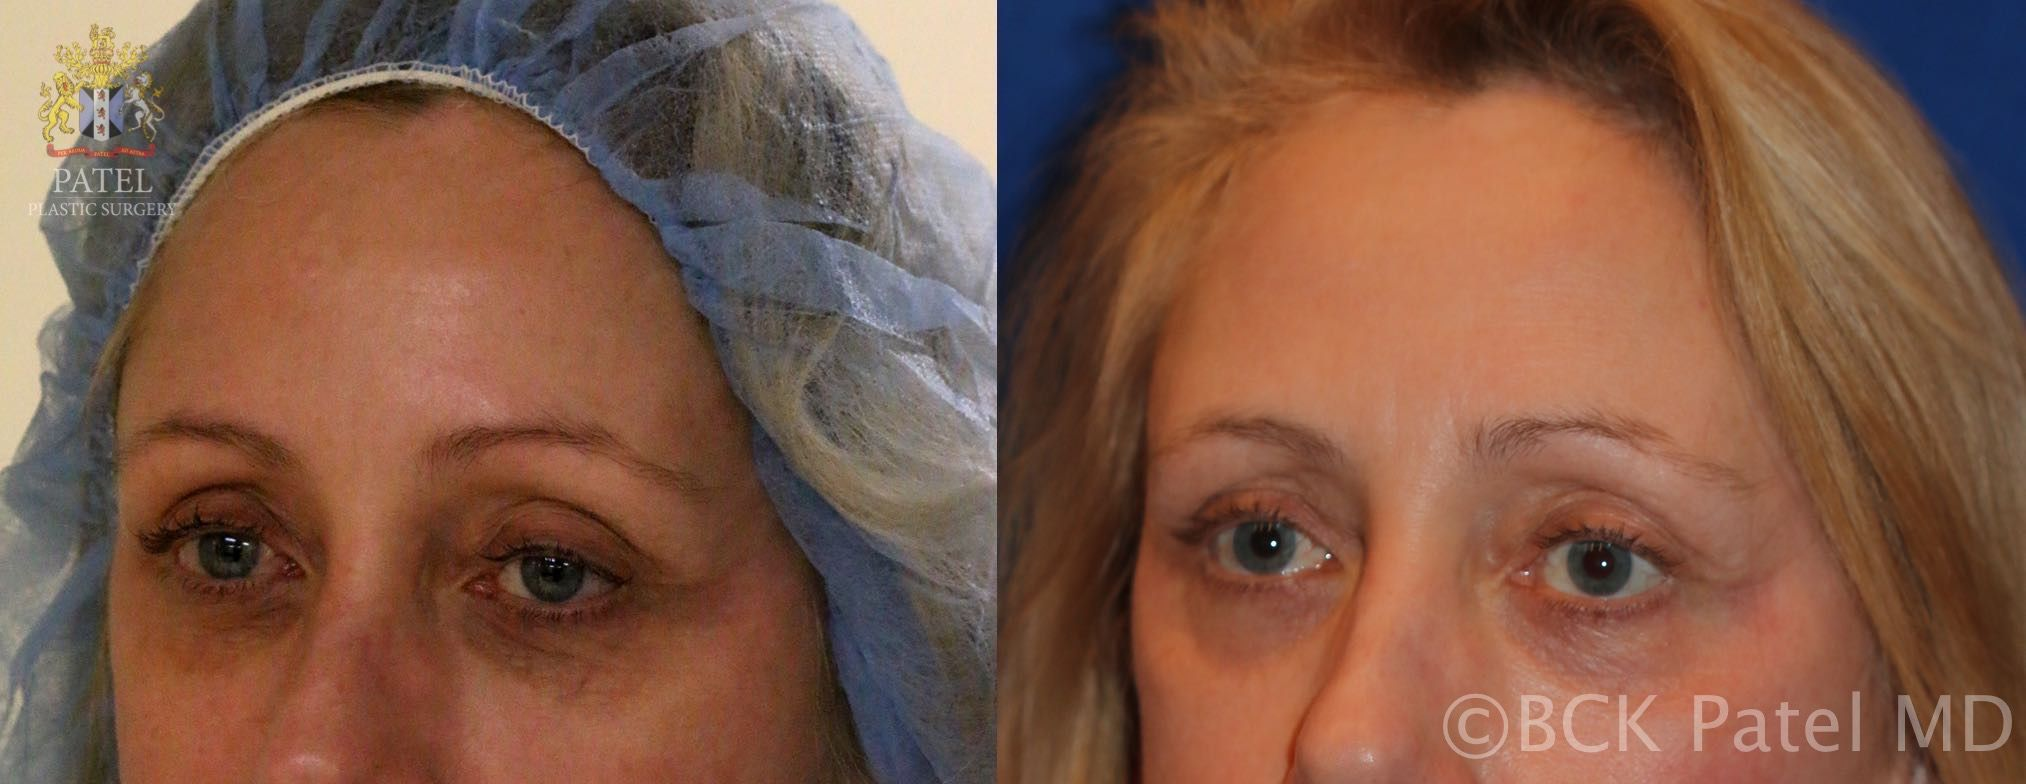 Before and after photos showing a nice improvement in the colour and texture of lower eyelid skin after fractionated CO2 laser. BCK Patel MD, FRCS, Salt Lake City